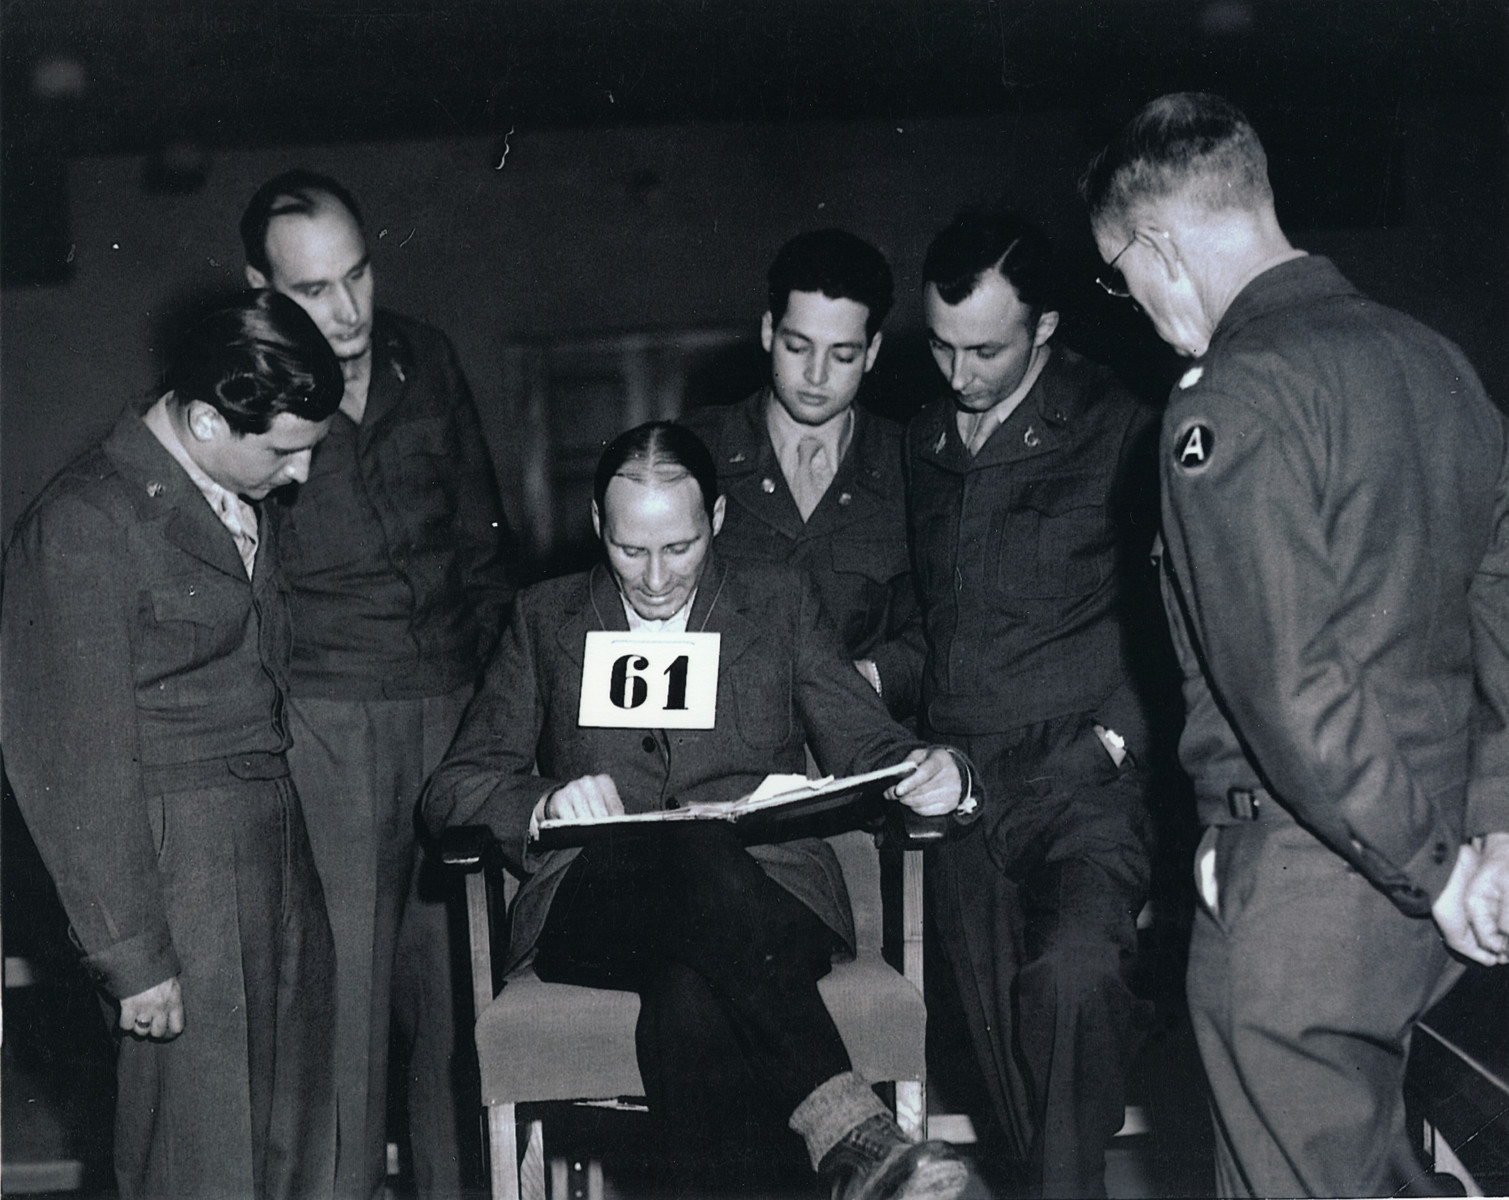 Victor Zoller (defendant 61) examines documents during the Mauthausen war crimes trial.  From left to right are the interpretter, Lt. Col. Ernst Oeding (defense attorney), Victor Zoller, Lt. Paul Guth (interrogator), William Denson (chief prosecutor) and Lt. Robert Wilson.  Victor Zoller former commander of the SS-Totenkopf guard battalion was sentenced to death by hanging.